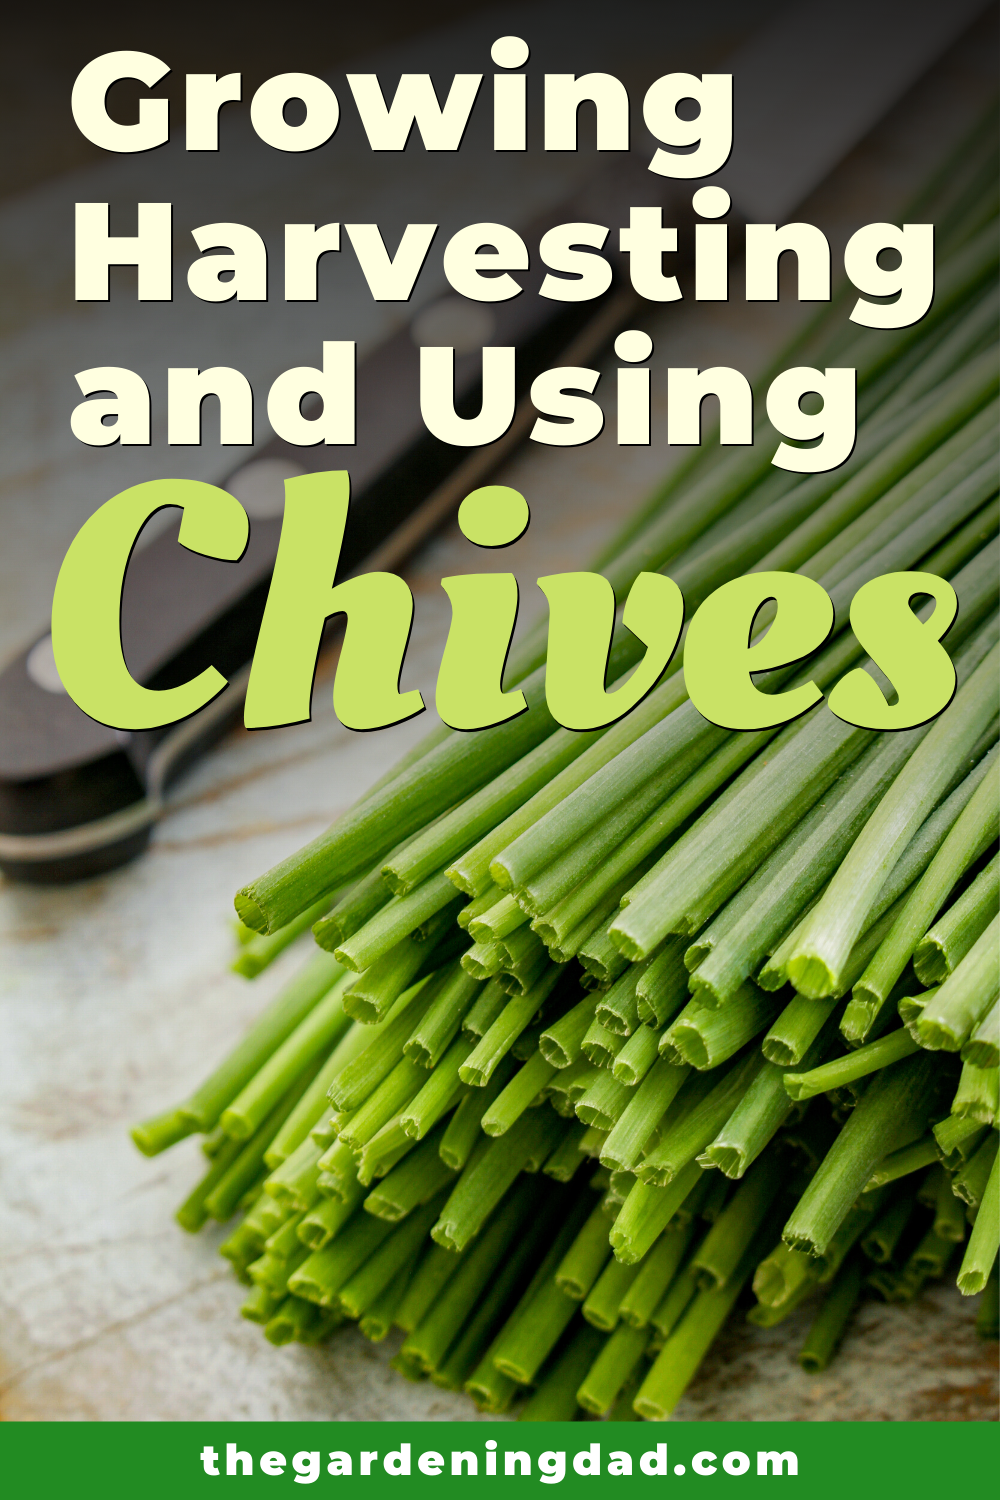 10 Proven Tips How To Grow Chives The Gardening Dad Growing Chives Food Garden Chives Plant